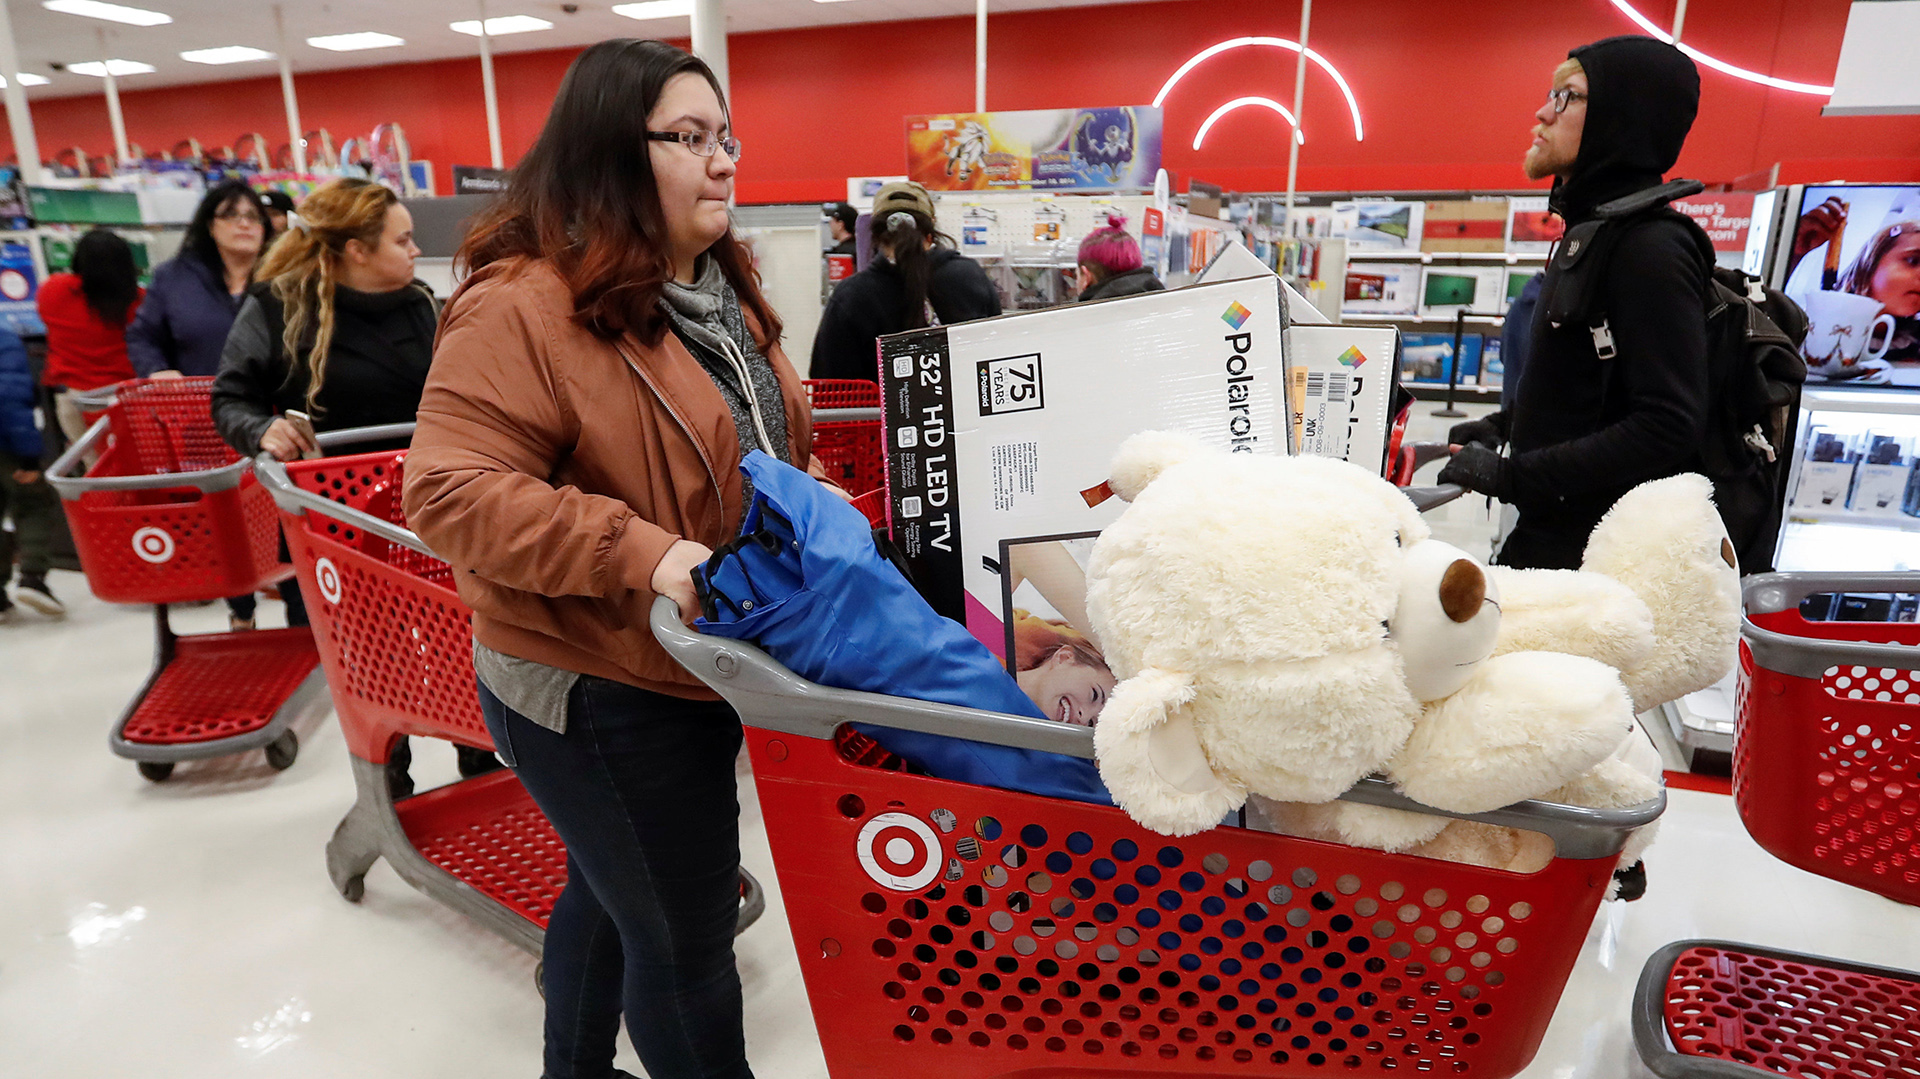 Customer pushes her shopping cart during the Black Friday sales event on Thanksgiving Day at Target in Chicago